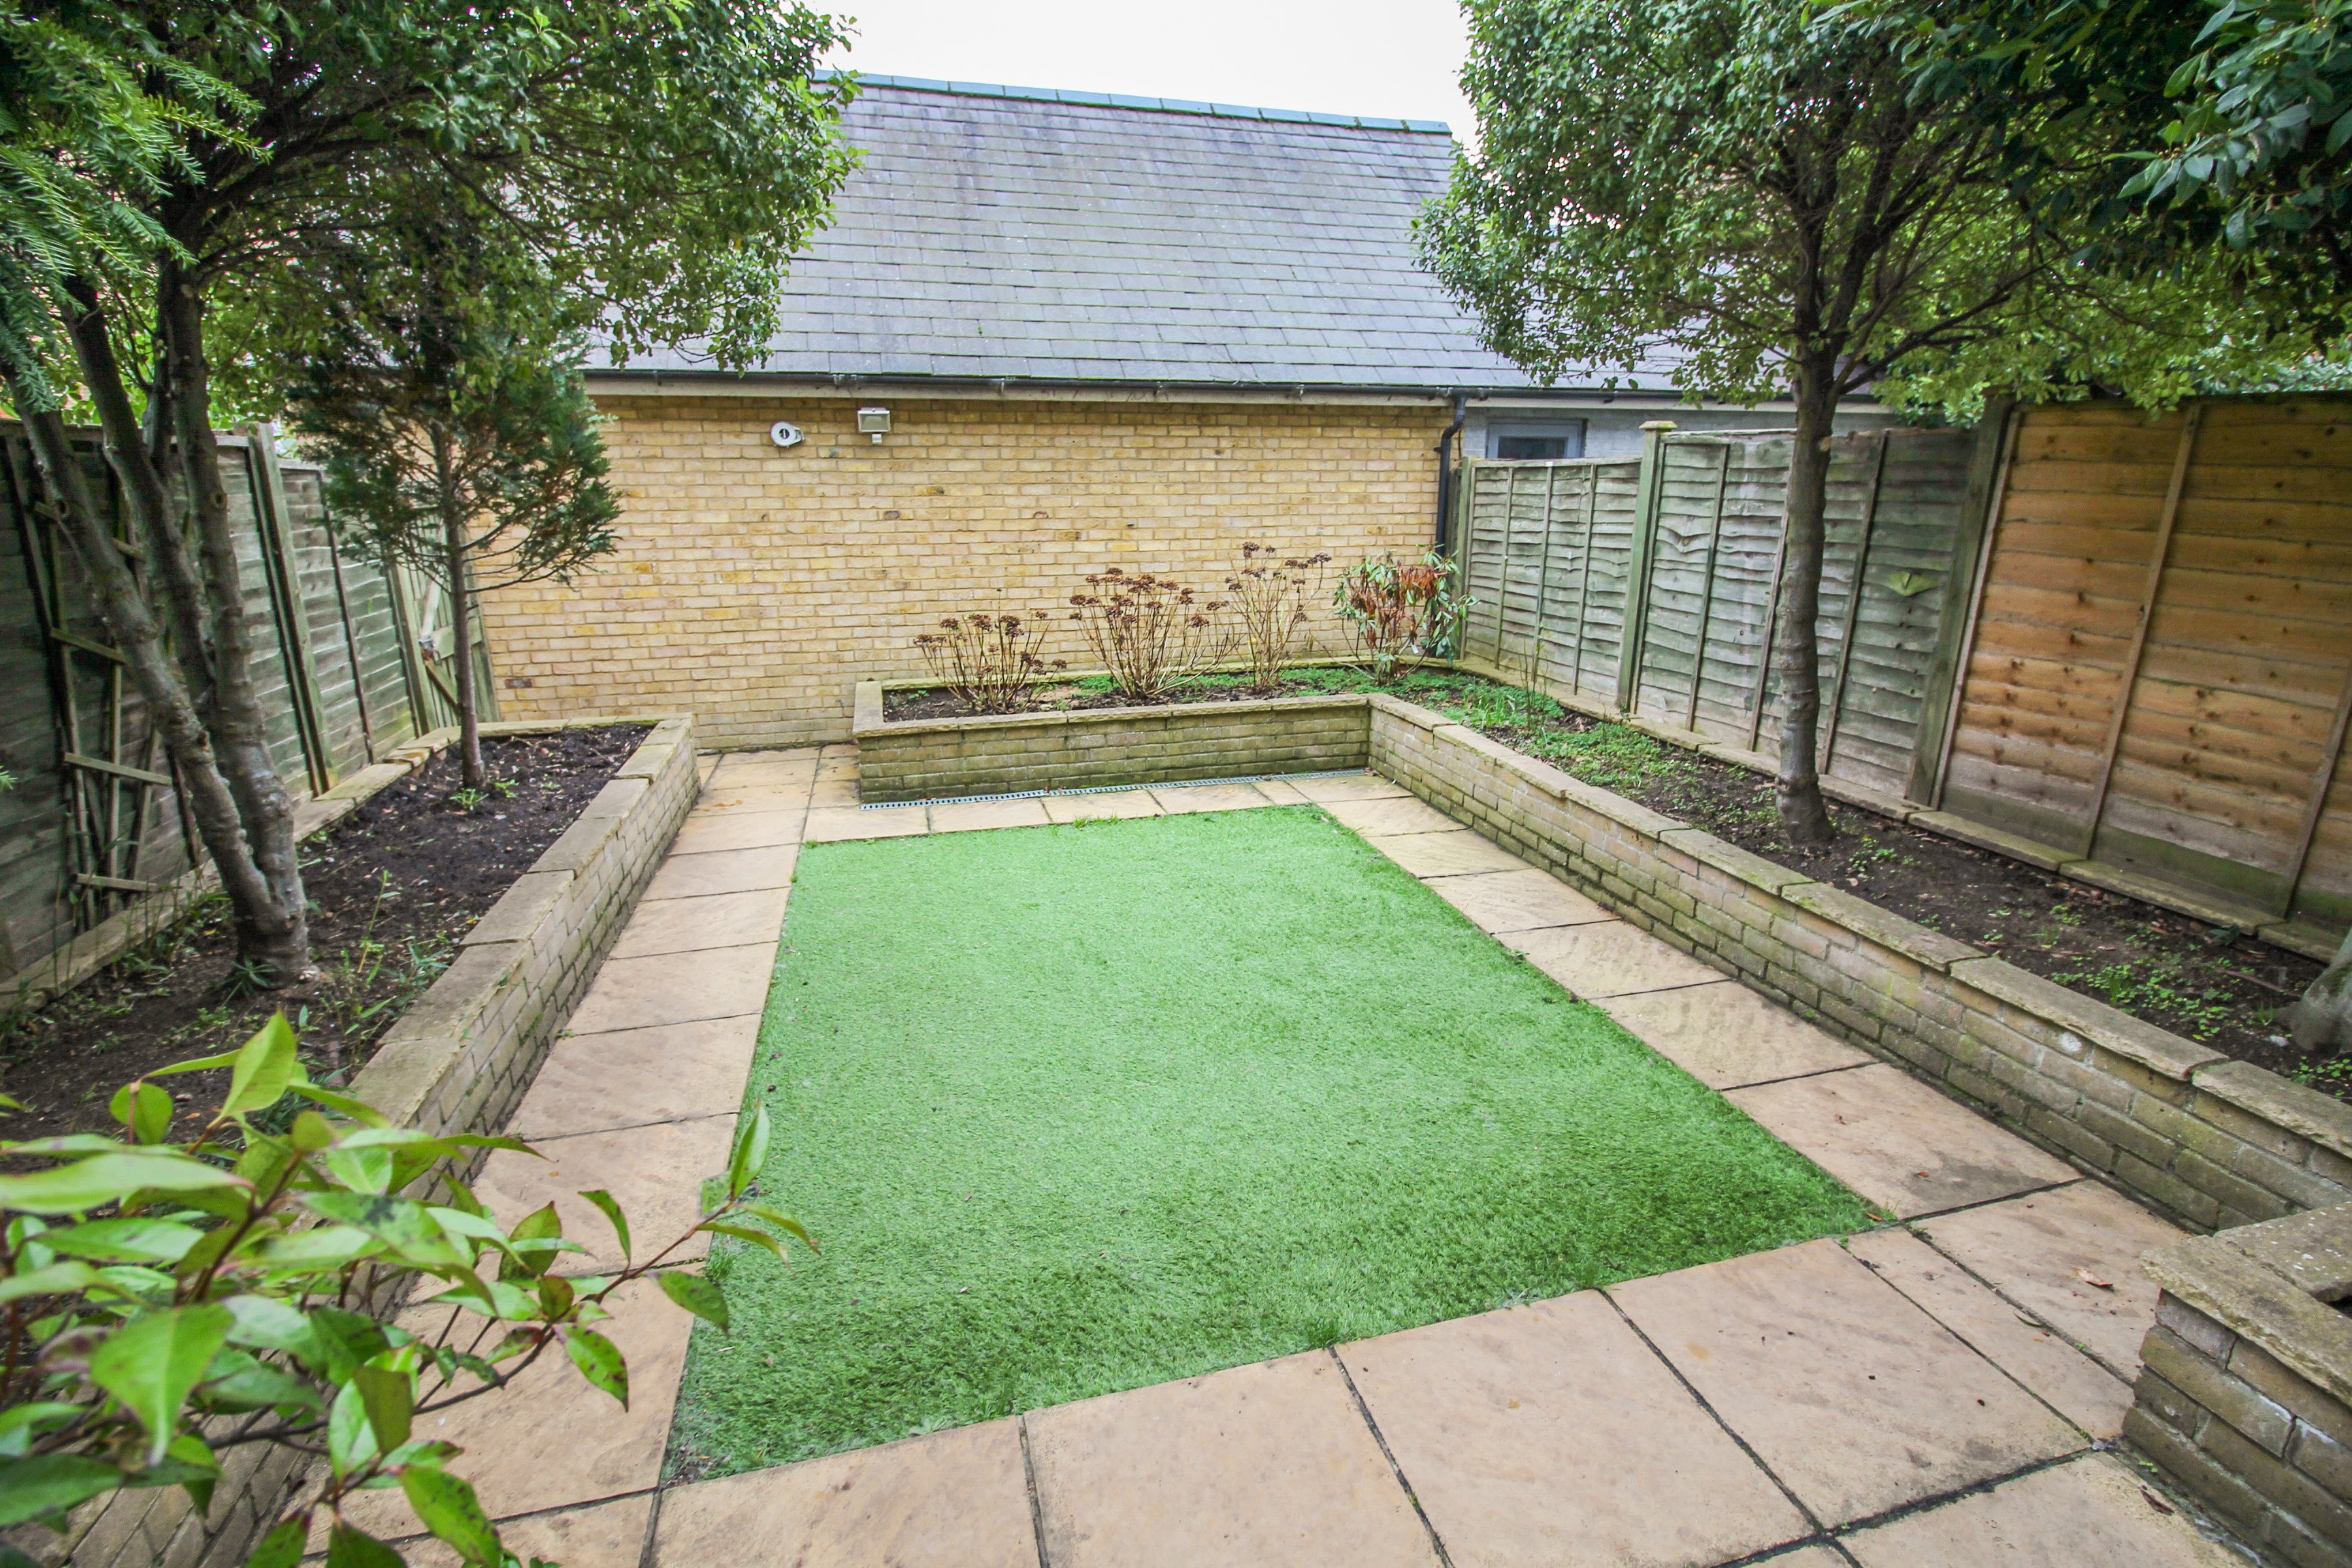 property in the chase  newhall  harlow  essex  cm17 9ja